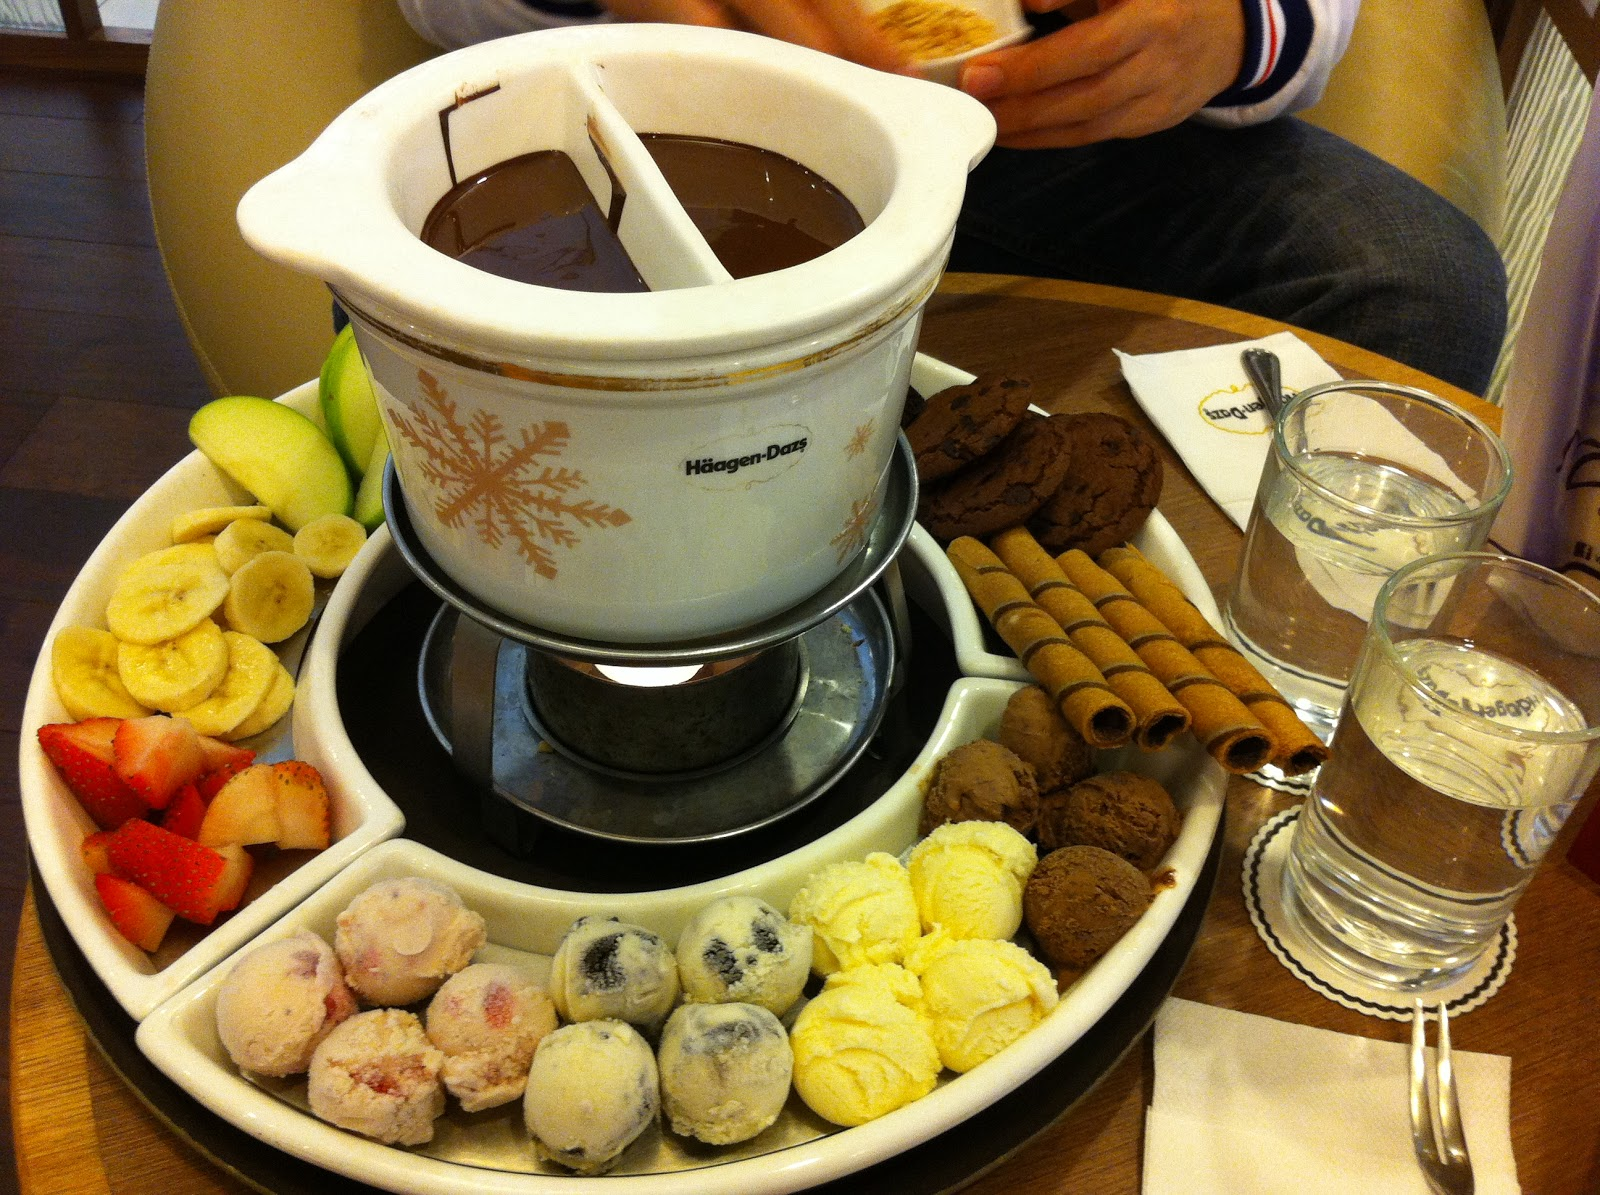 Shinnleng's Endless Stories ☼: Haagen-Dazs Chocolate ...